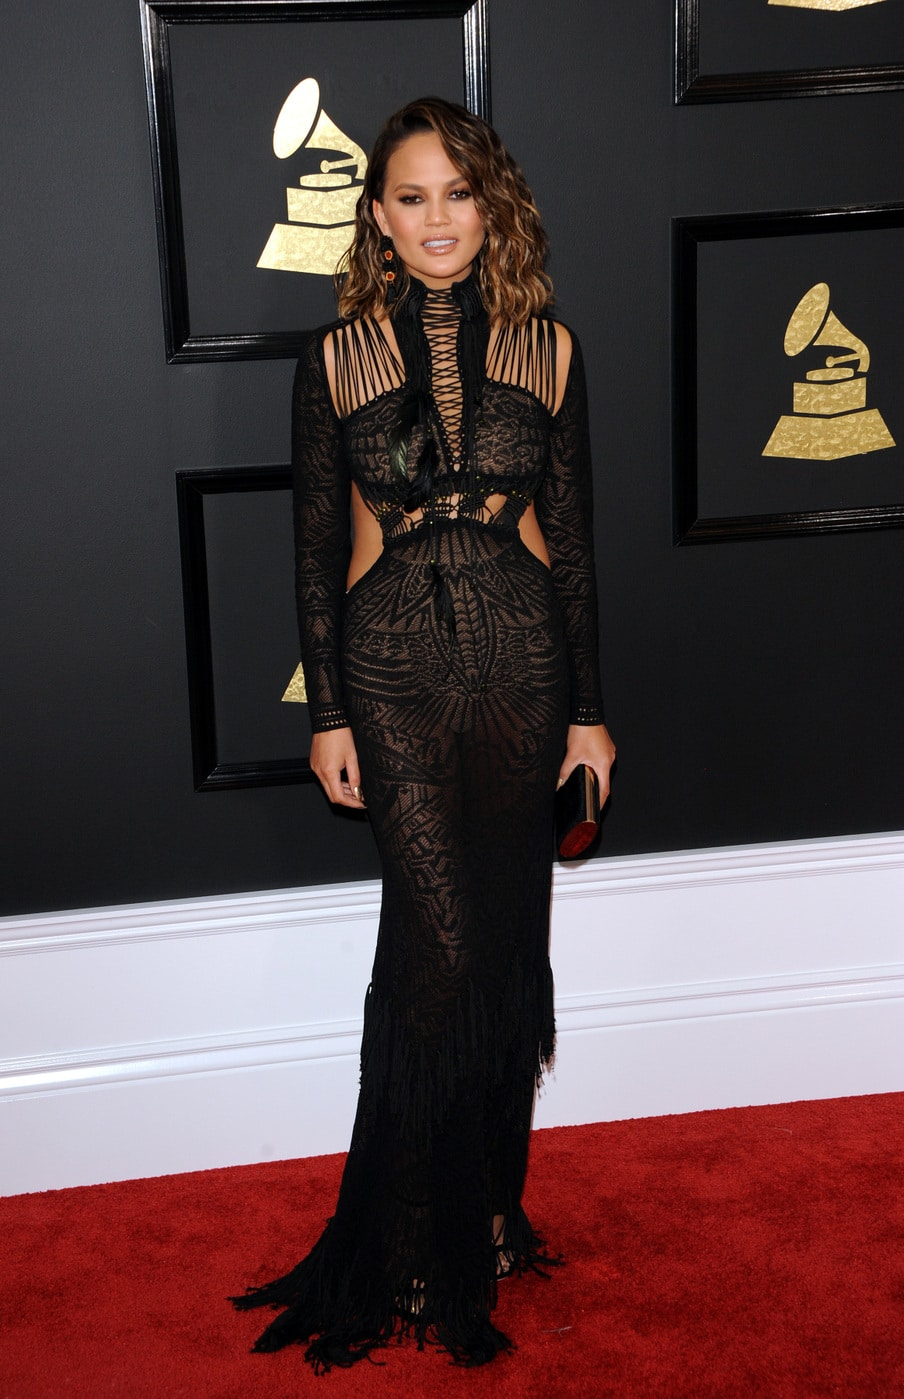 Chrissy Teigen in Roberto Cavalli black gown at the 2017 Grammy Awards